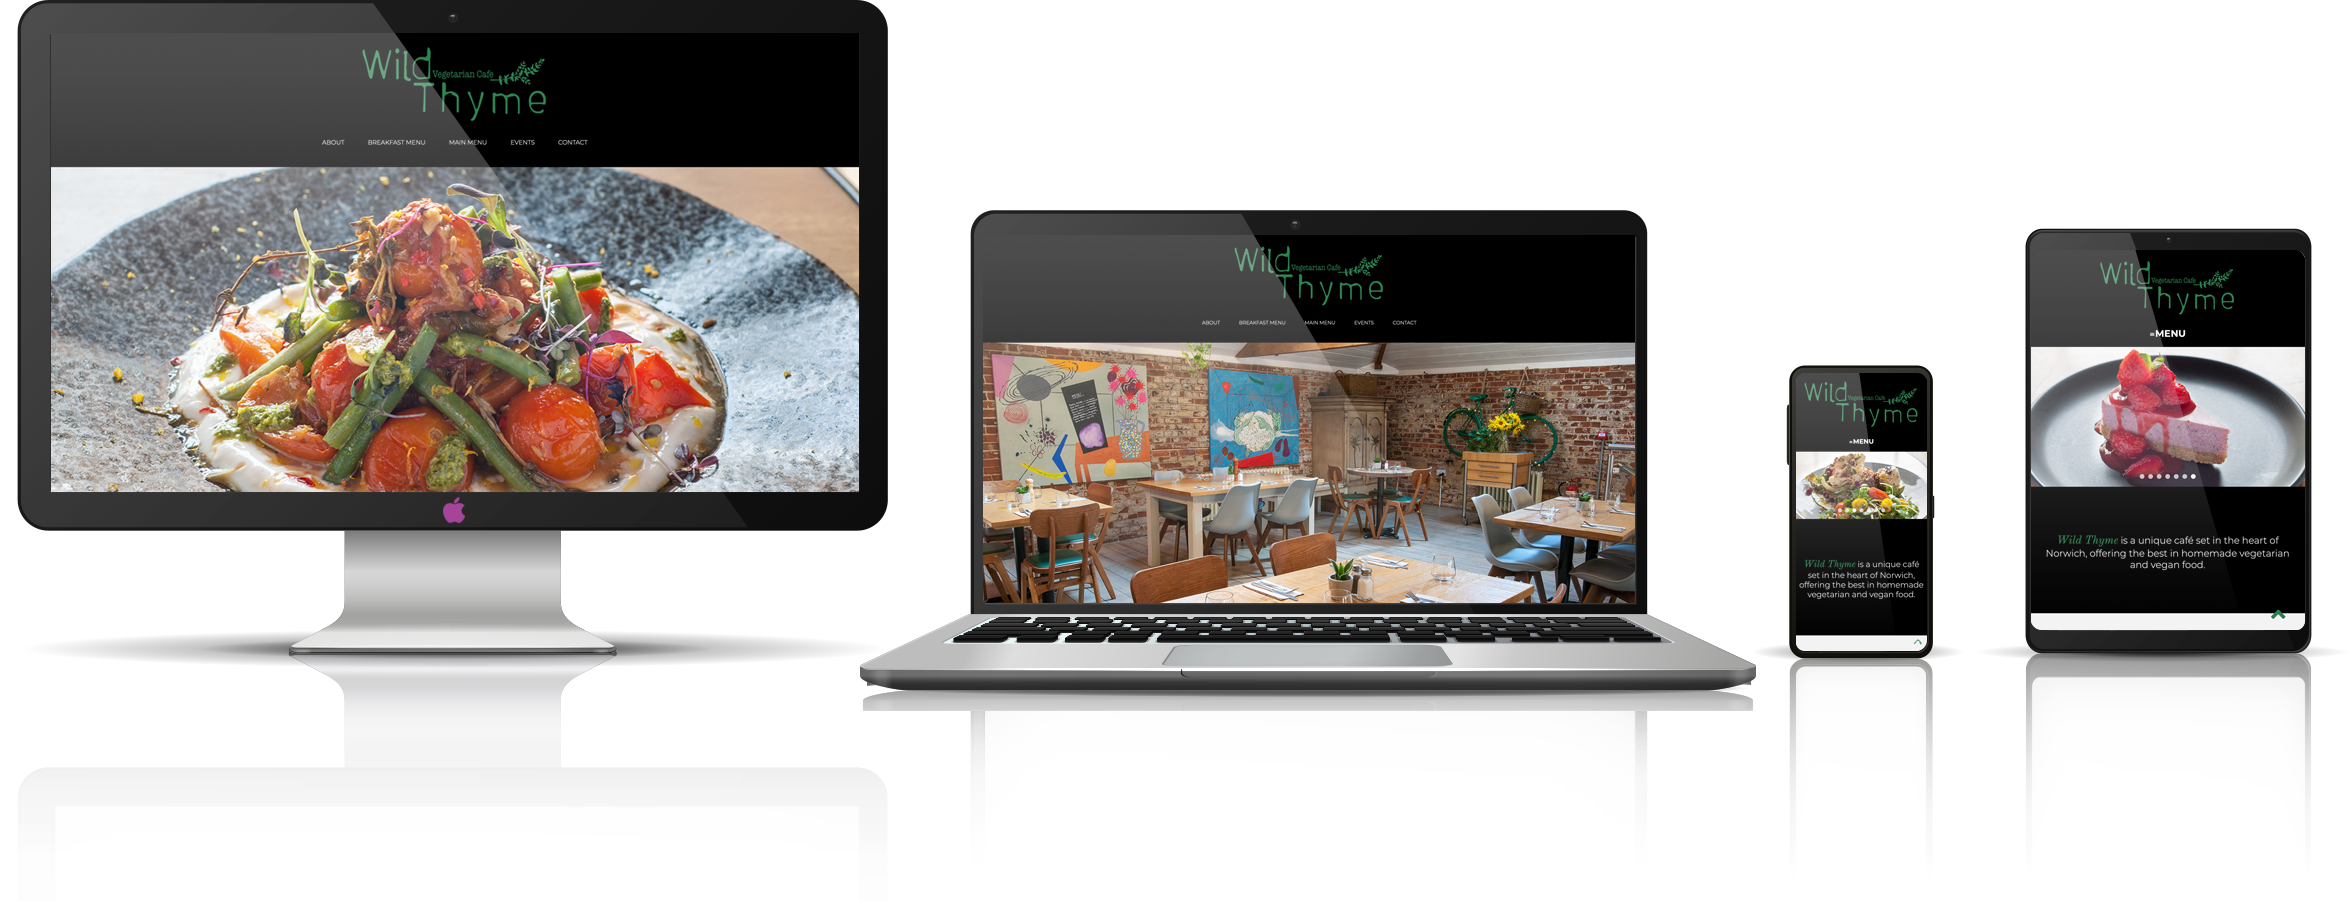 The Wild Thyme Veteraian Cafe fully responsive mock-up images showing desktop, laptop, tablet, and mobile phone devices.